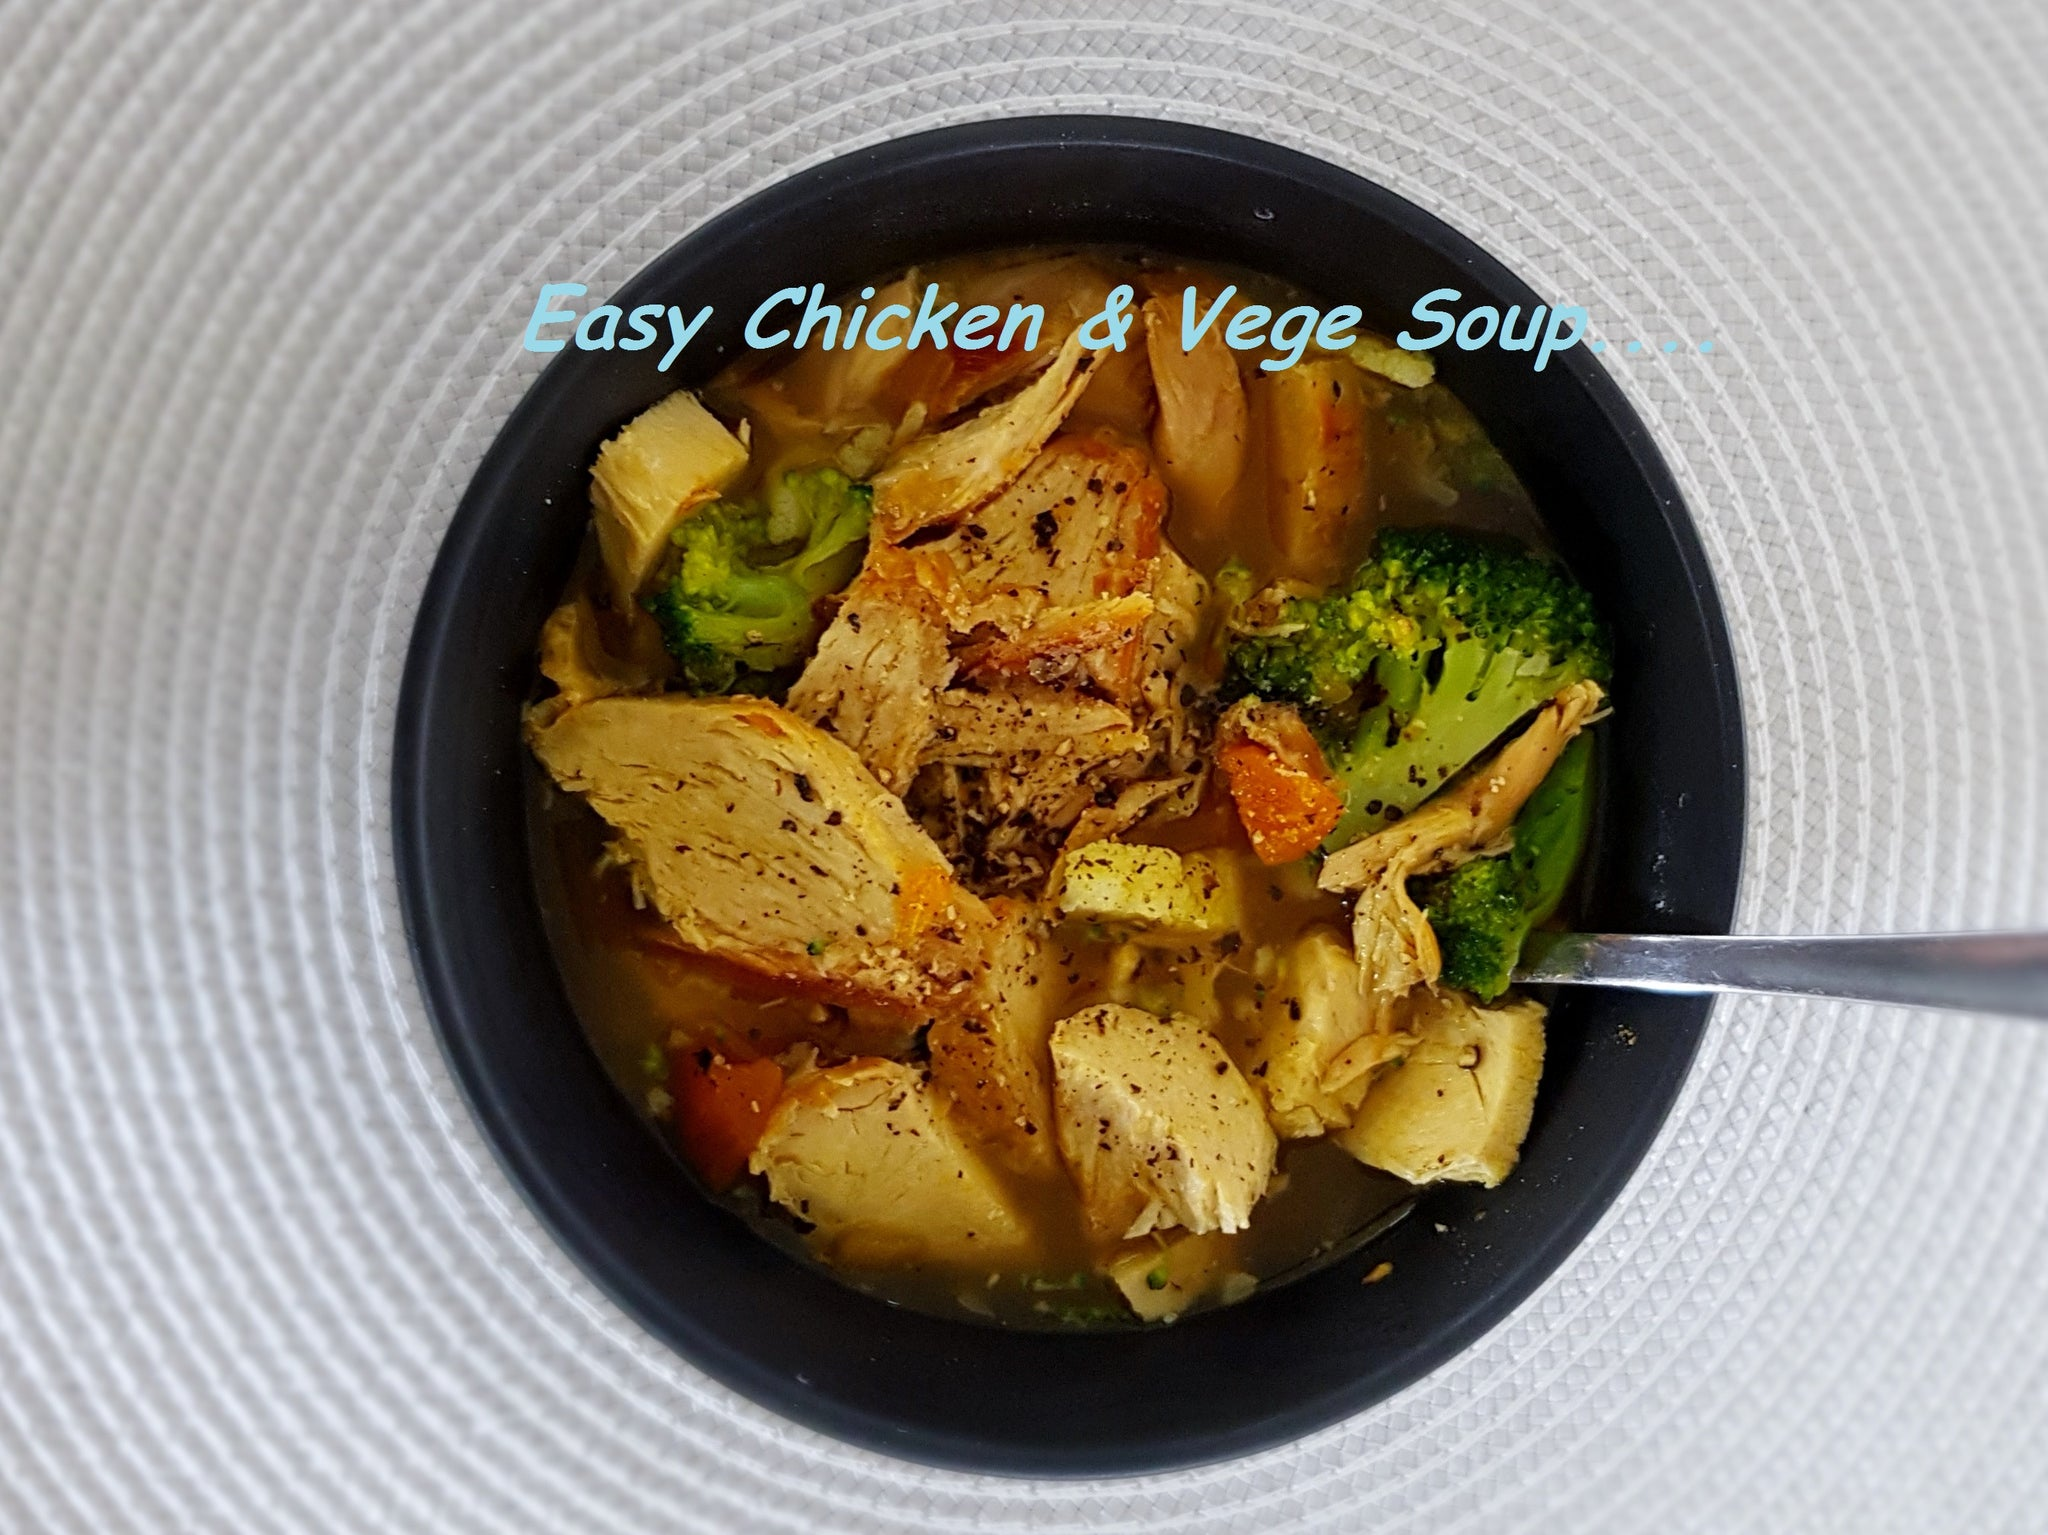 Warm up this winter with this easy low carb Chicken Vegetable Soup